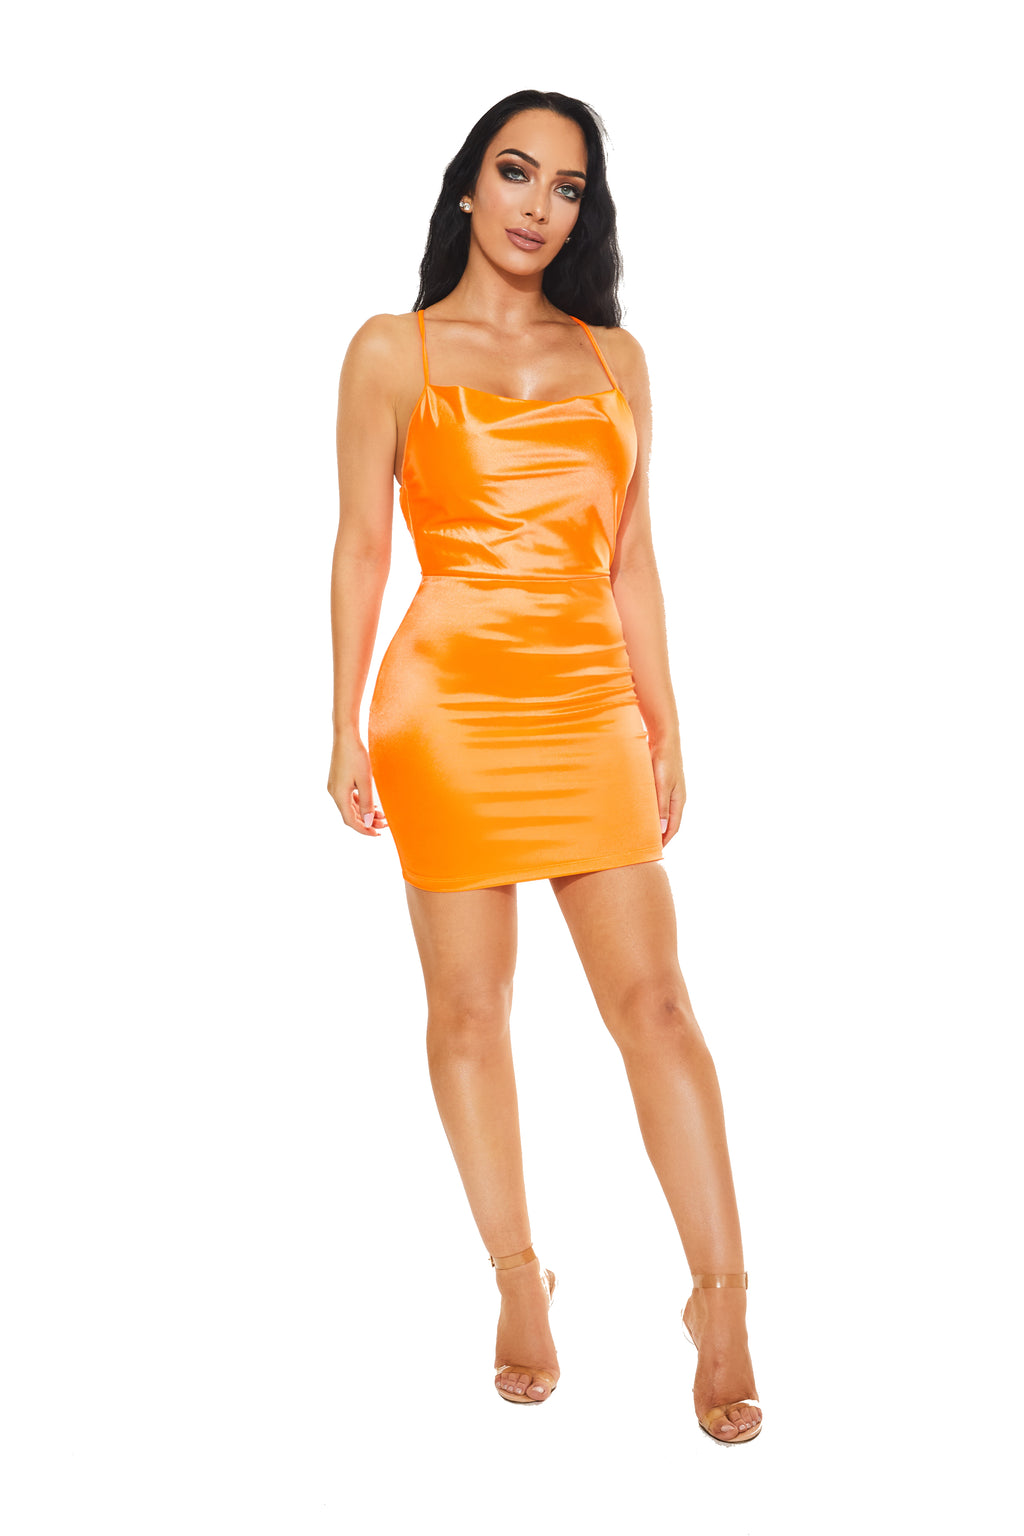 VAVA VOOM Satin dress - Neon Orange - www.prettyboutique.com